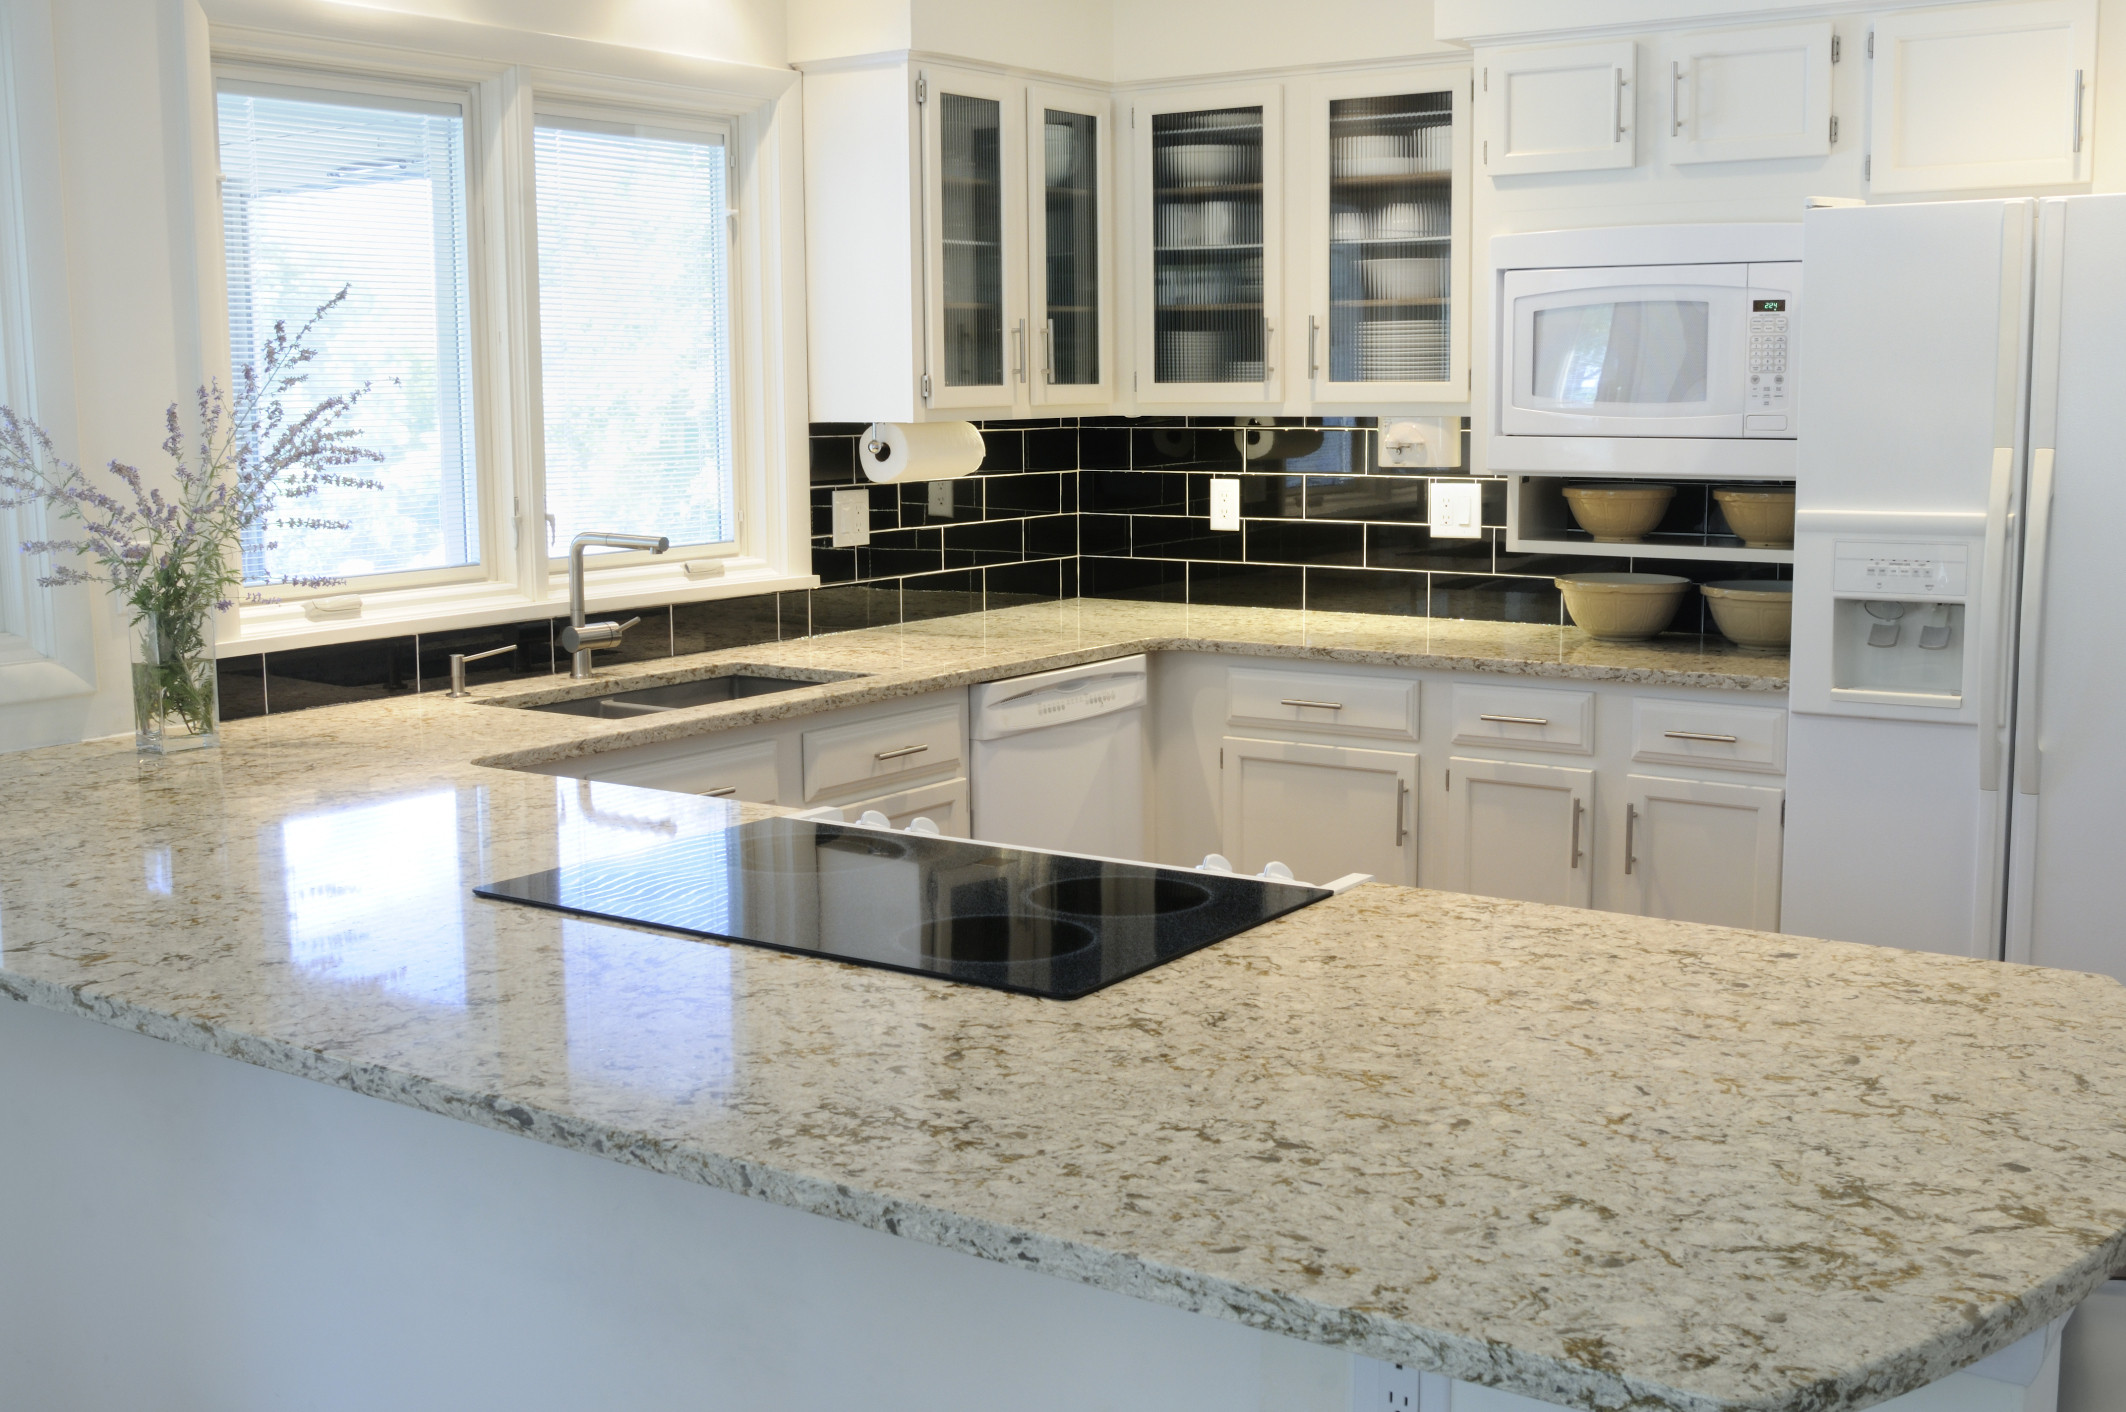 Uncategorized How Much Are New Kitchen Countertops 10 reasons to let go of the granite obsession already huffpost quartz countertop